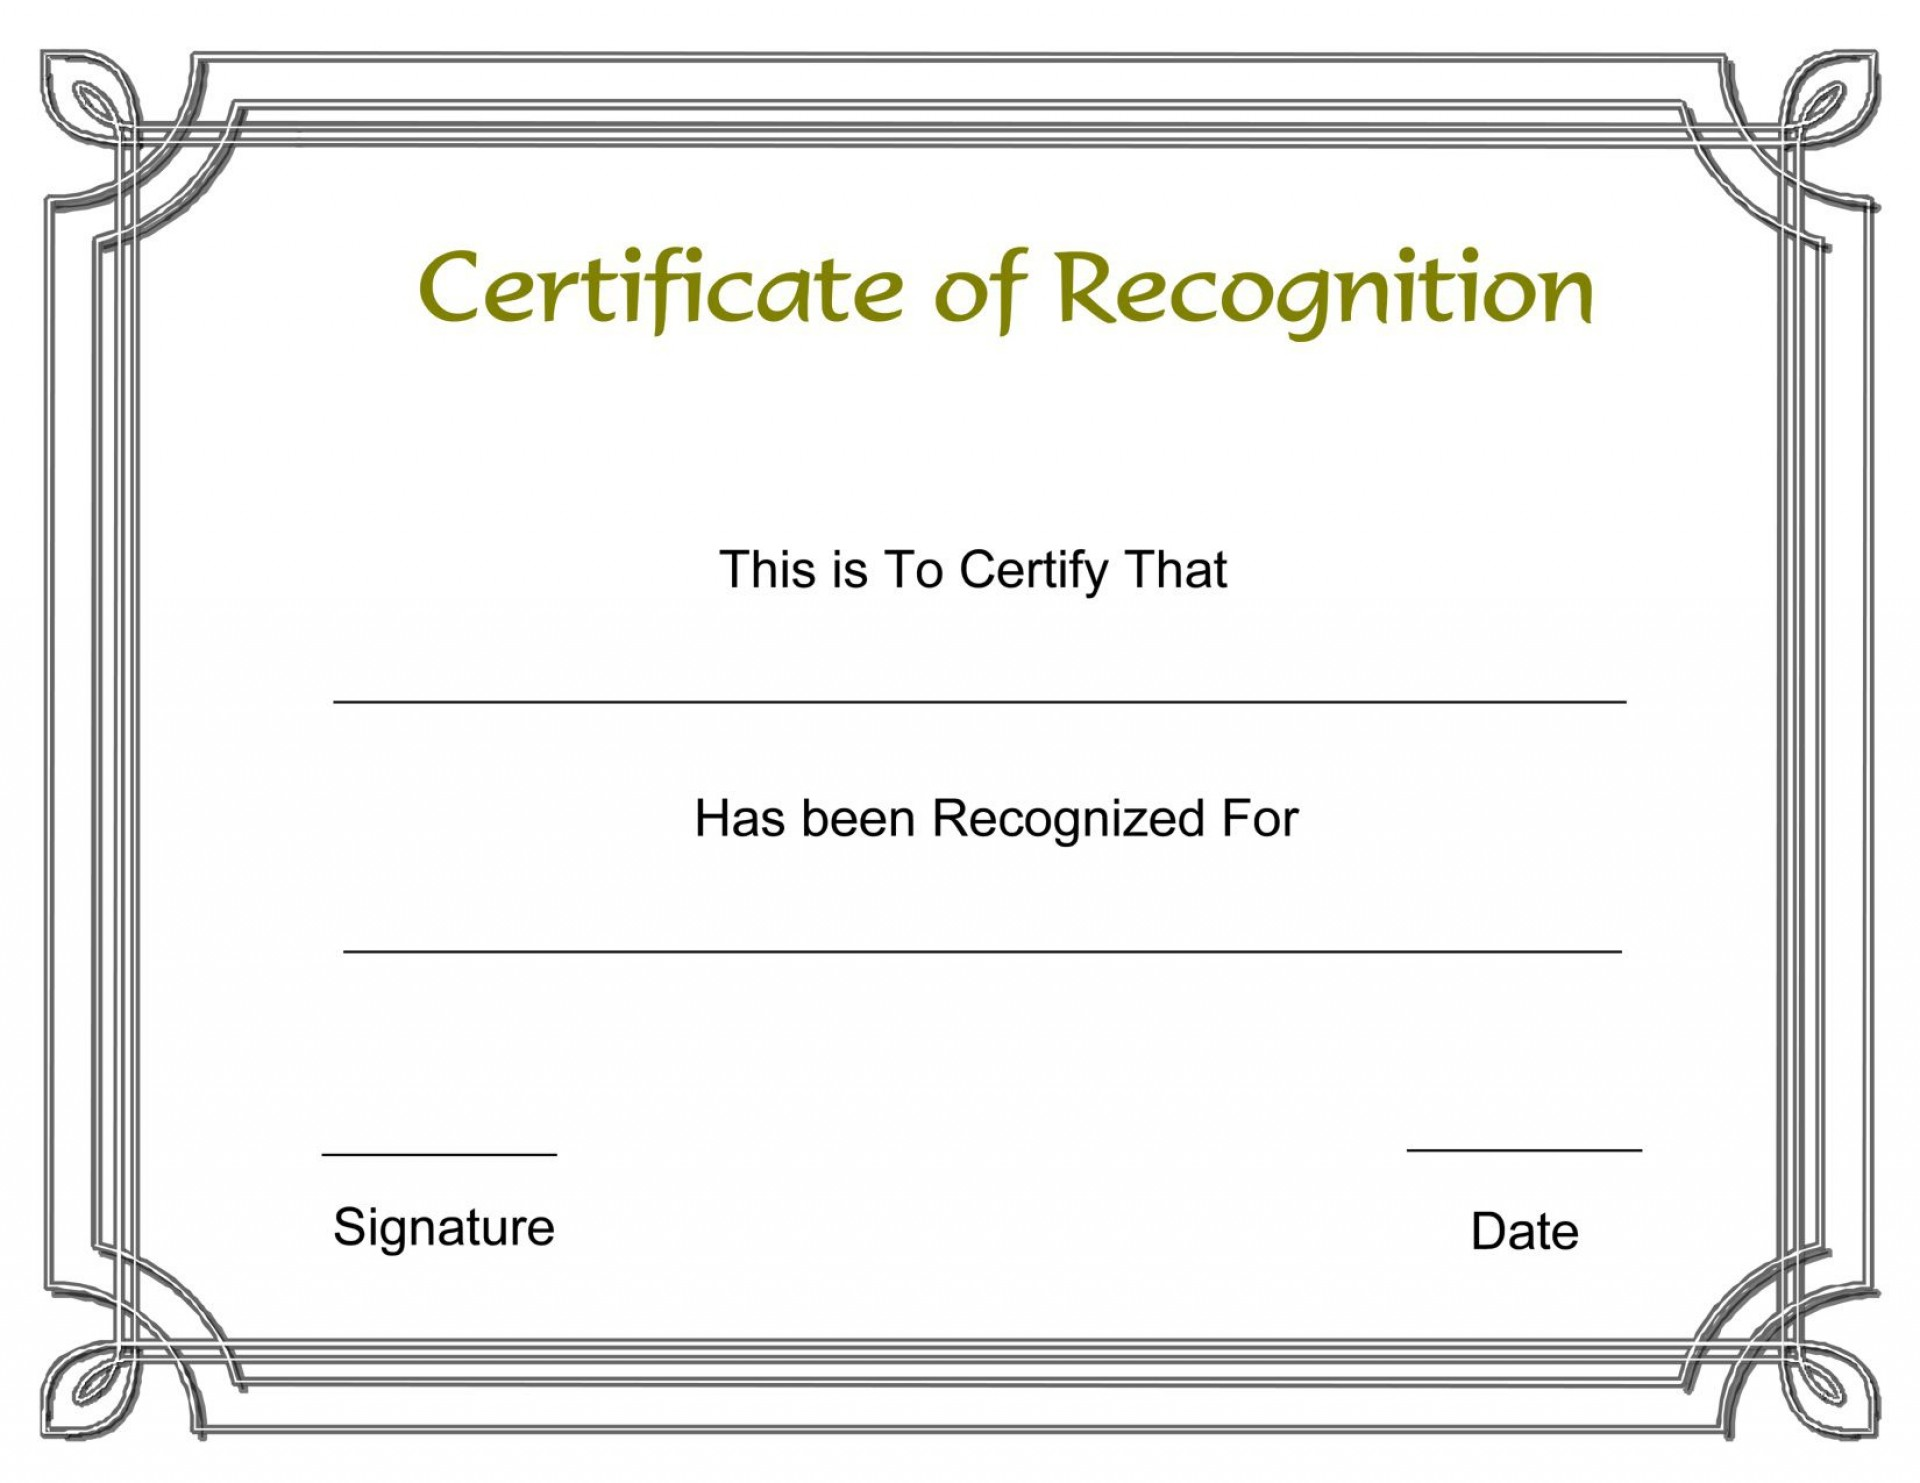 003 Formidable Recognition Certificate Template Free Design  Employee Award Of Download Word1920